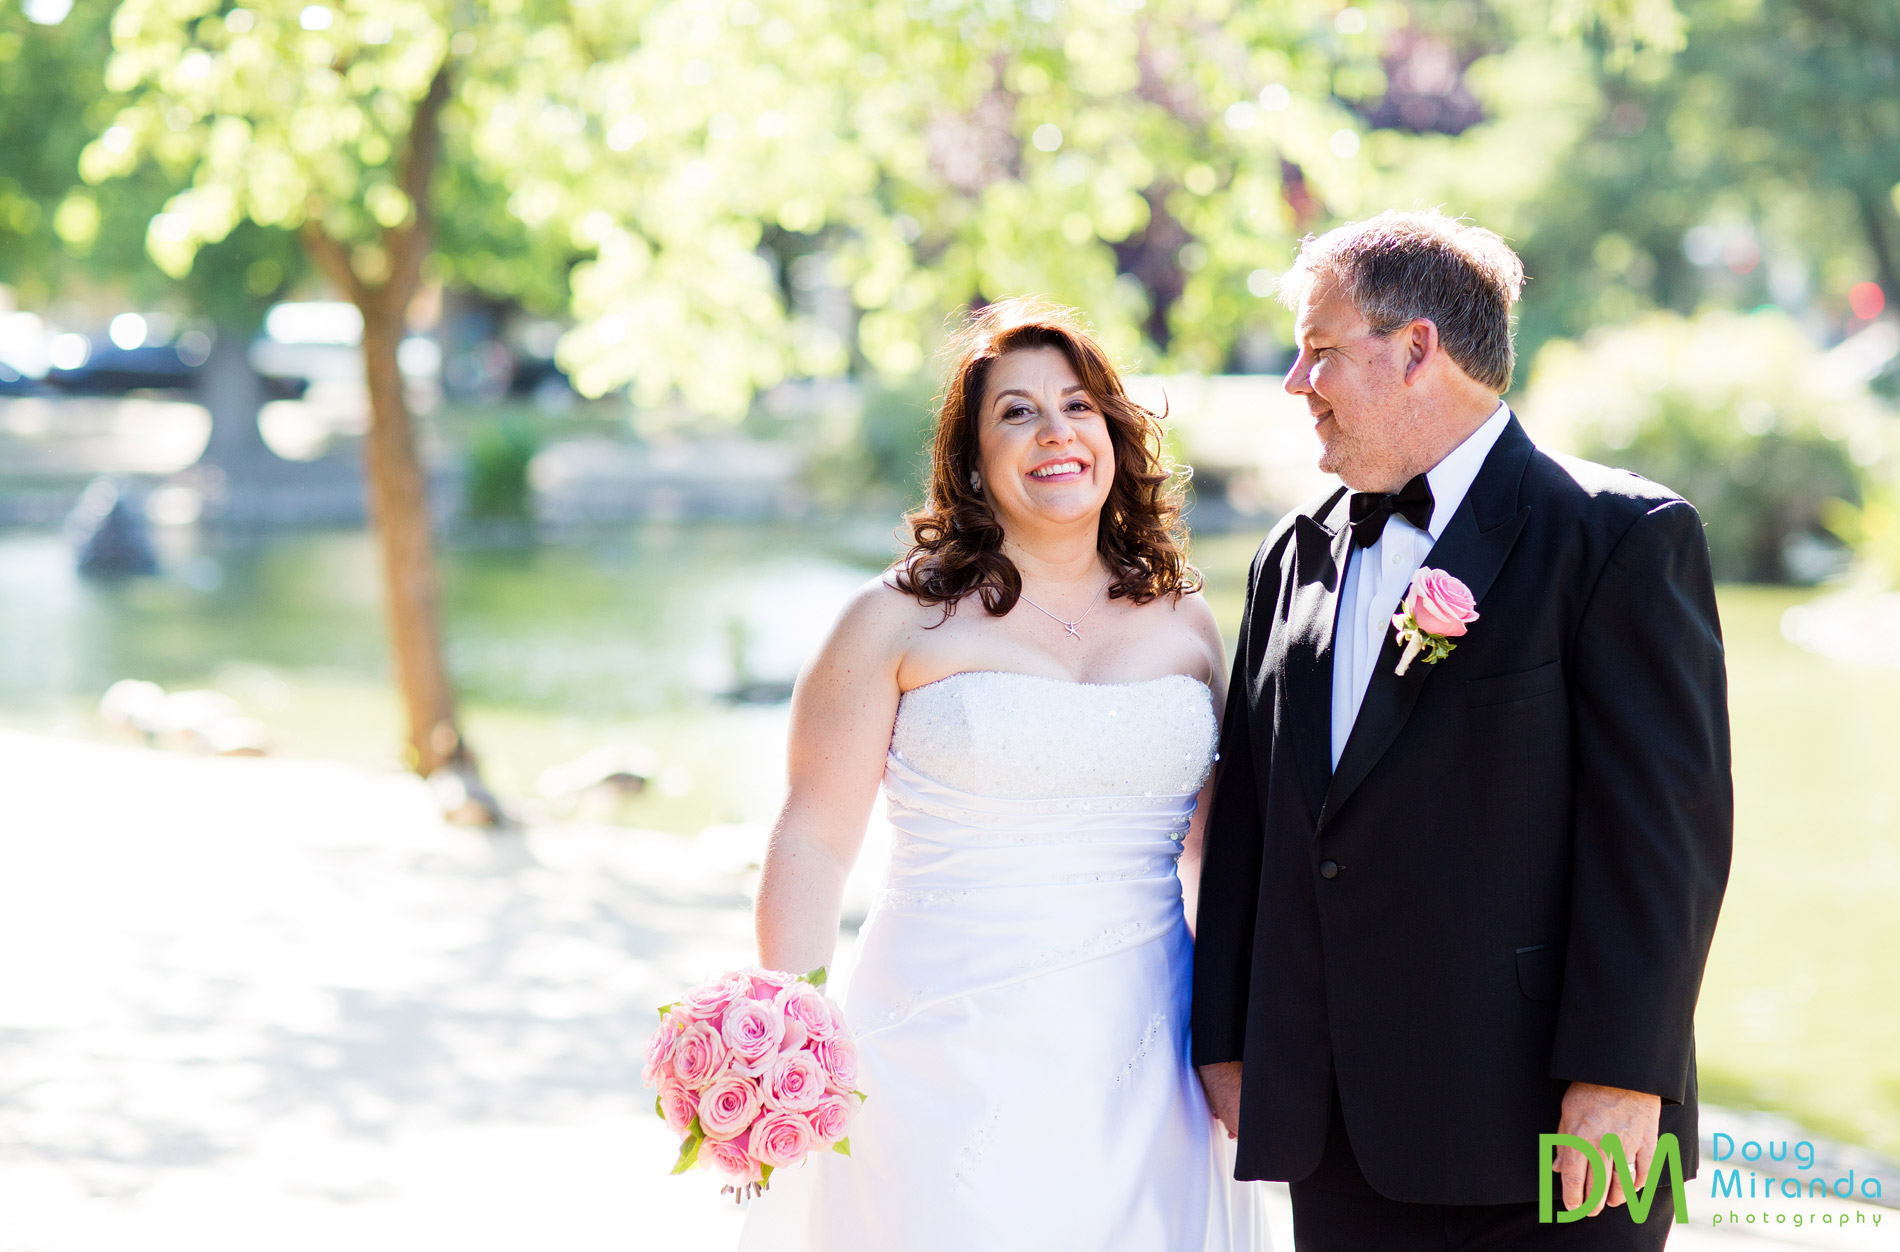 mckinley park rose garden wedding photos